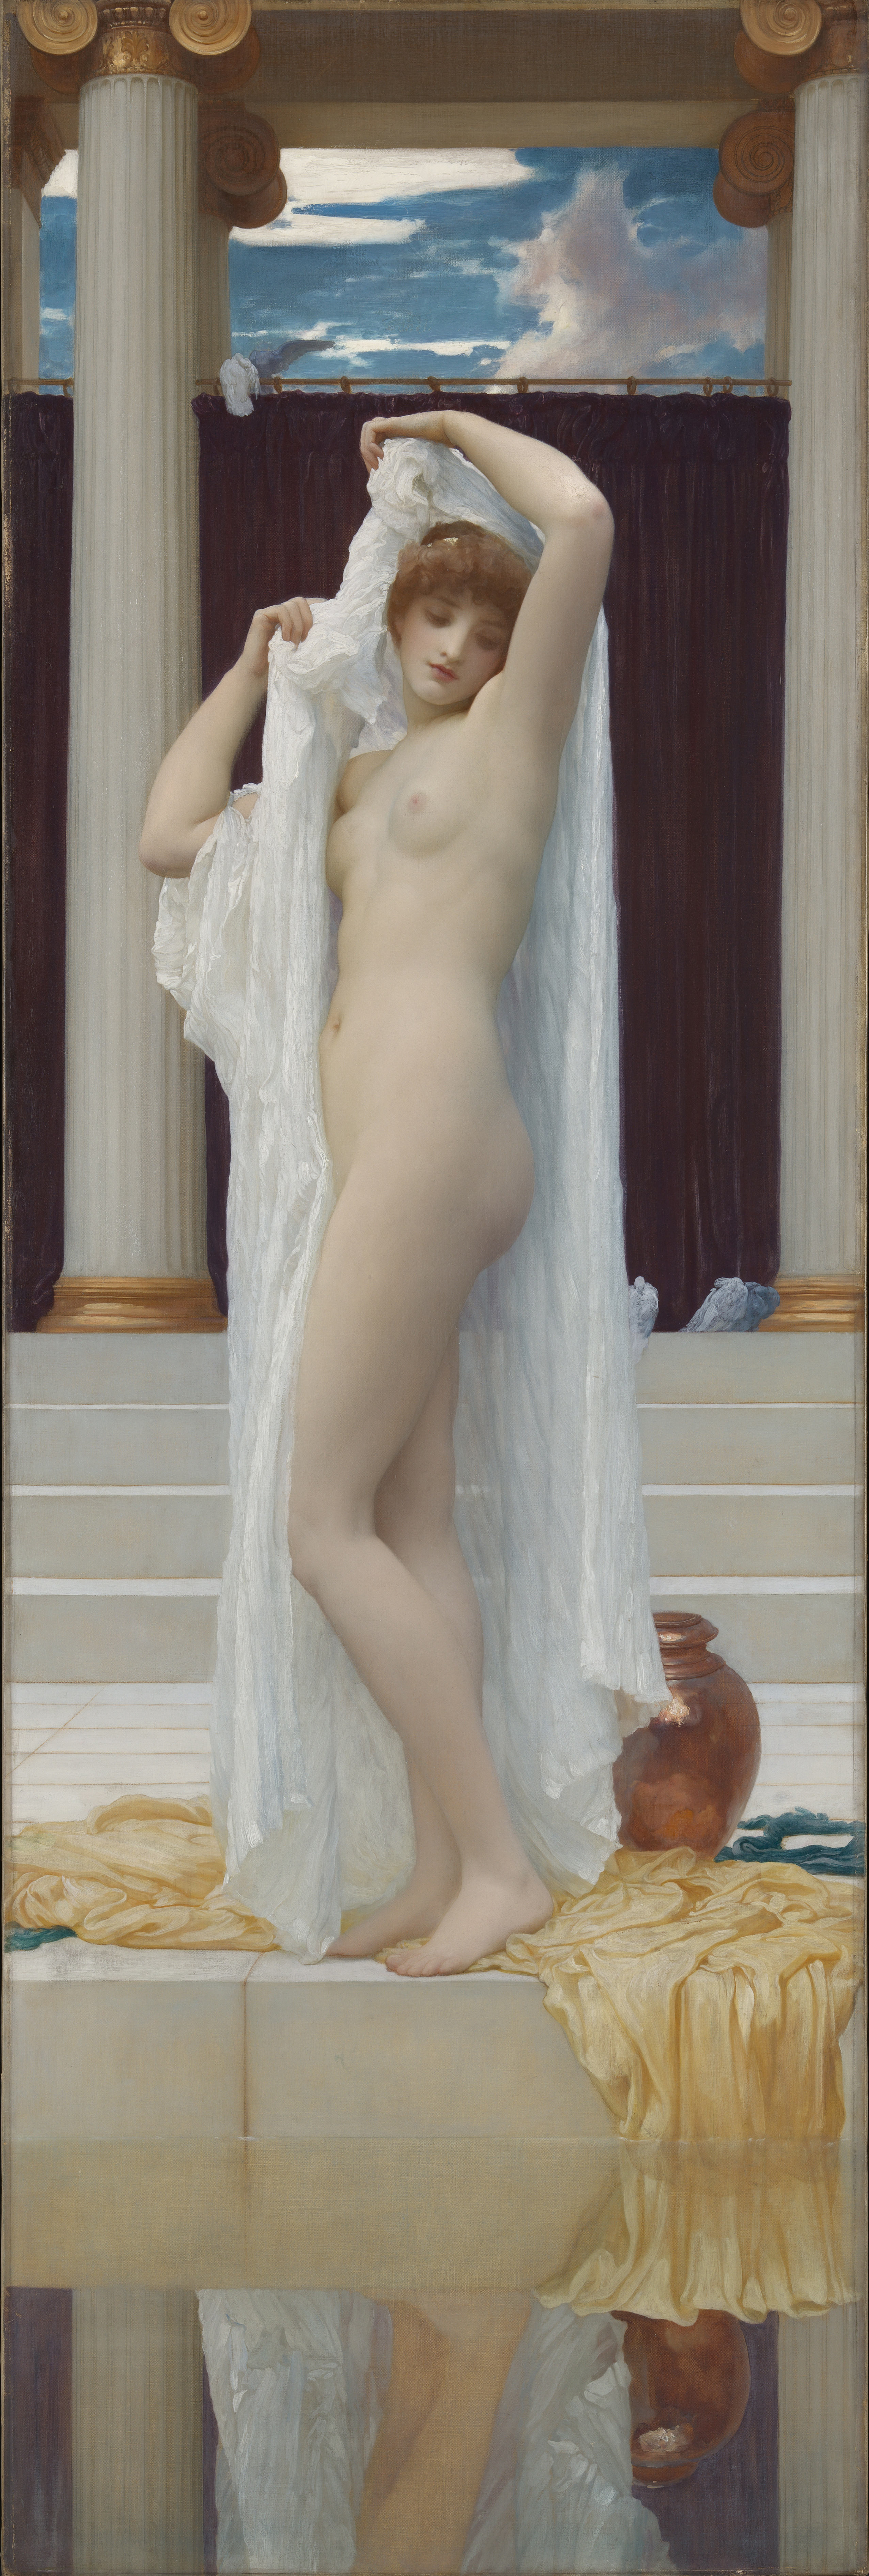 exhibited 1890, oil on canvas, 189.2 x 62.2 cm. Collection of Tate, London (N01574).